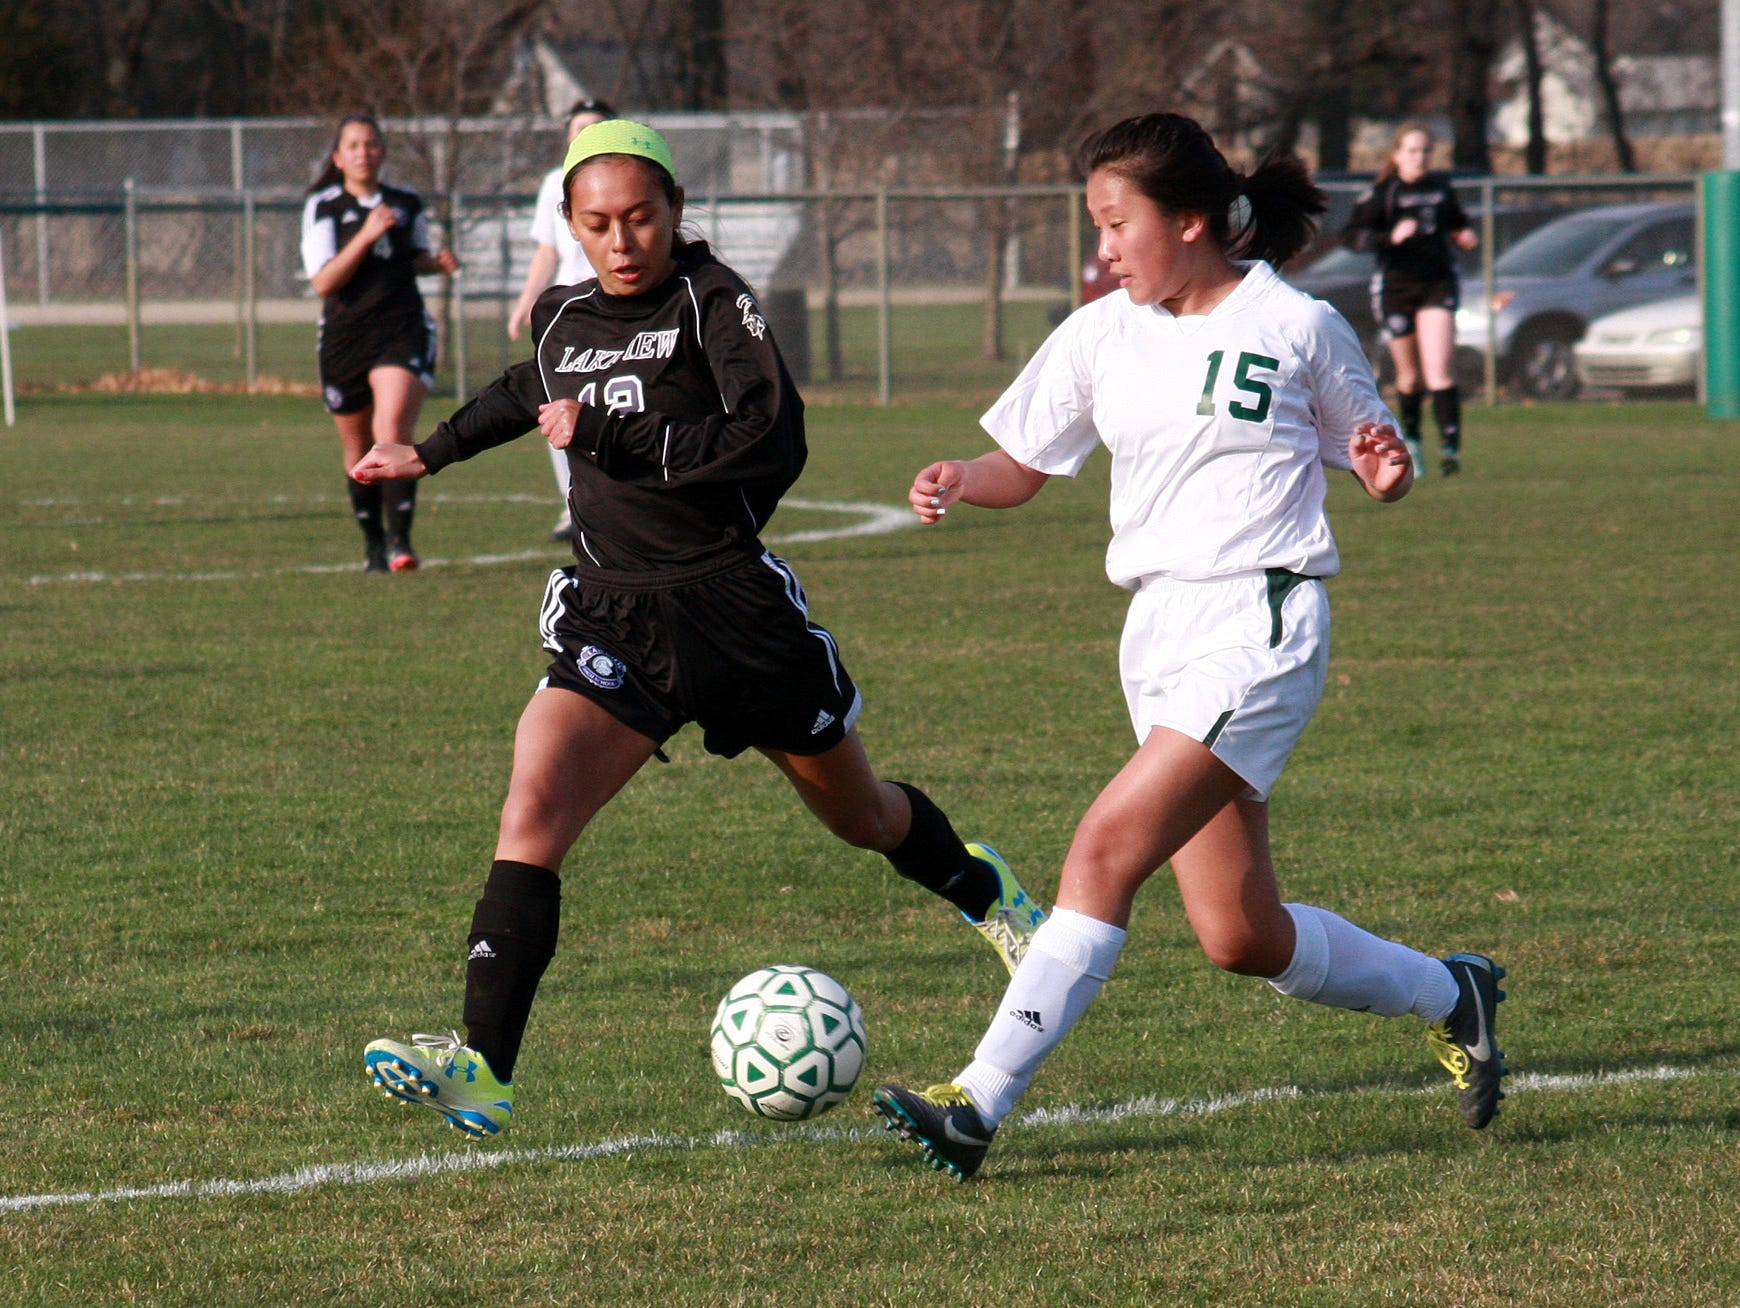 Pennfield's Leah Tharp tries to get the ball past Lakeview's Adriana Clark in action earlier this season.